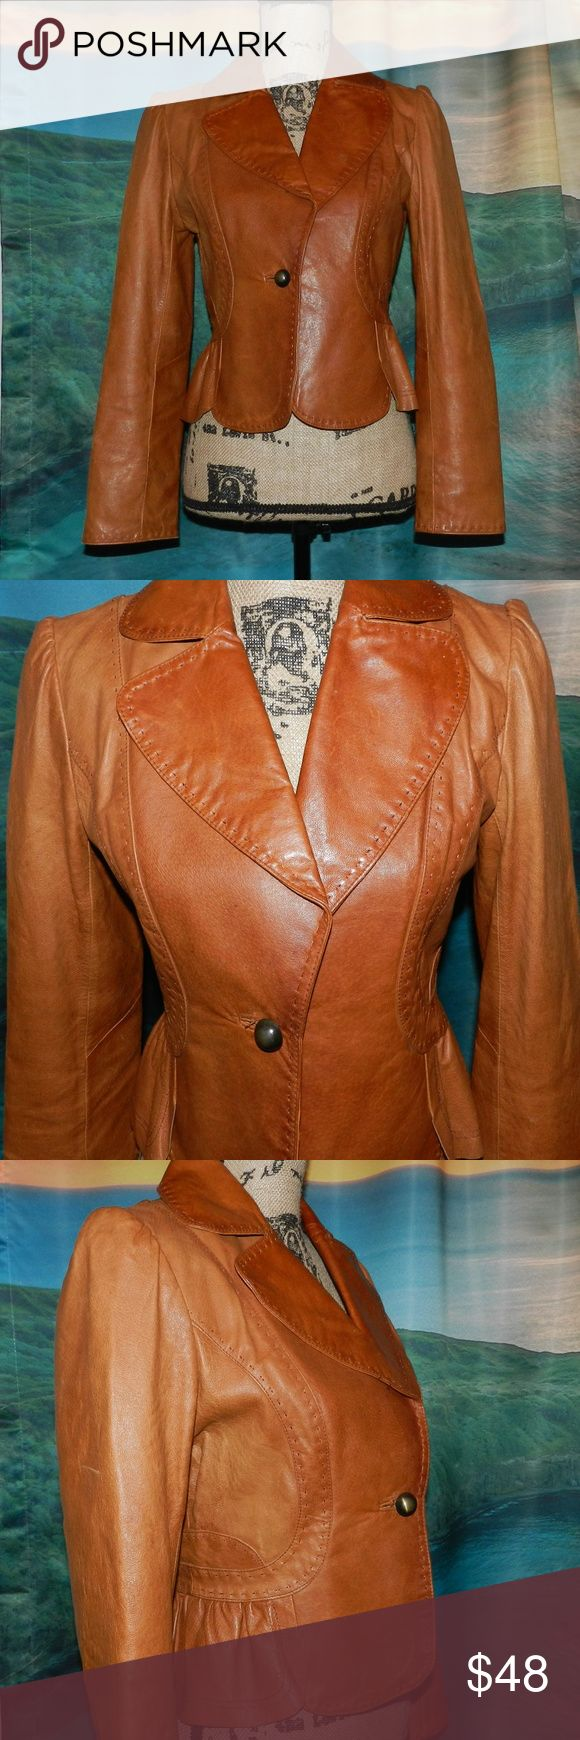 "VS Moda International Genuine Leather Jacket This jacket is absolutely stunning!! Beautiful feminine details and genuine leather - worn once!  Moda International from Victoria's Secret, size small.   Bust: 17.5"" laying flat Length: 20"" shoulder to hem Sleeve: 23.5"" shoulder to cuff  Ships same or next business day from smoke free home!! Moda International Jackets & Coats"